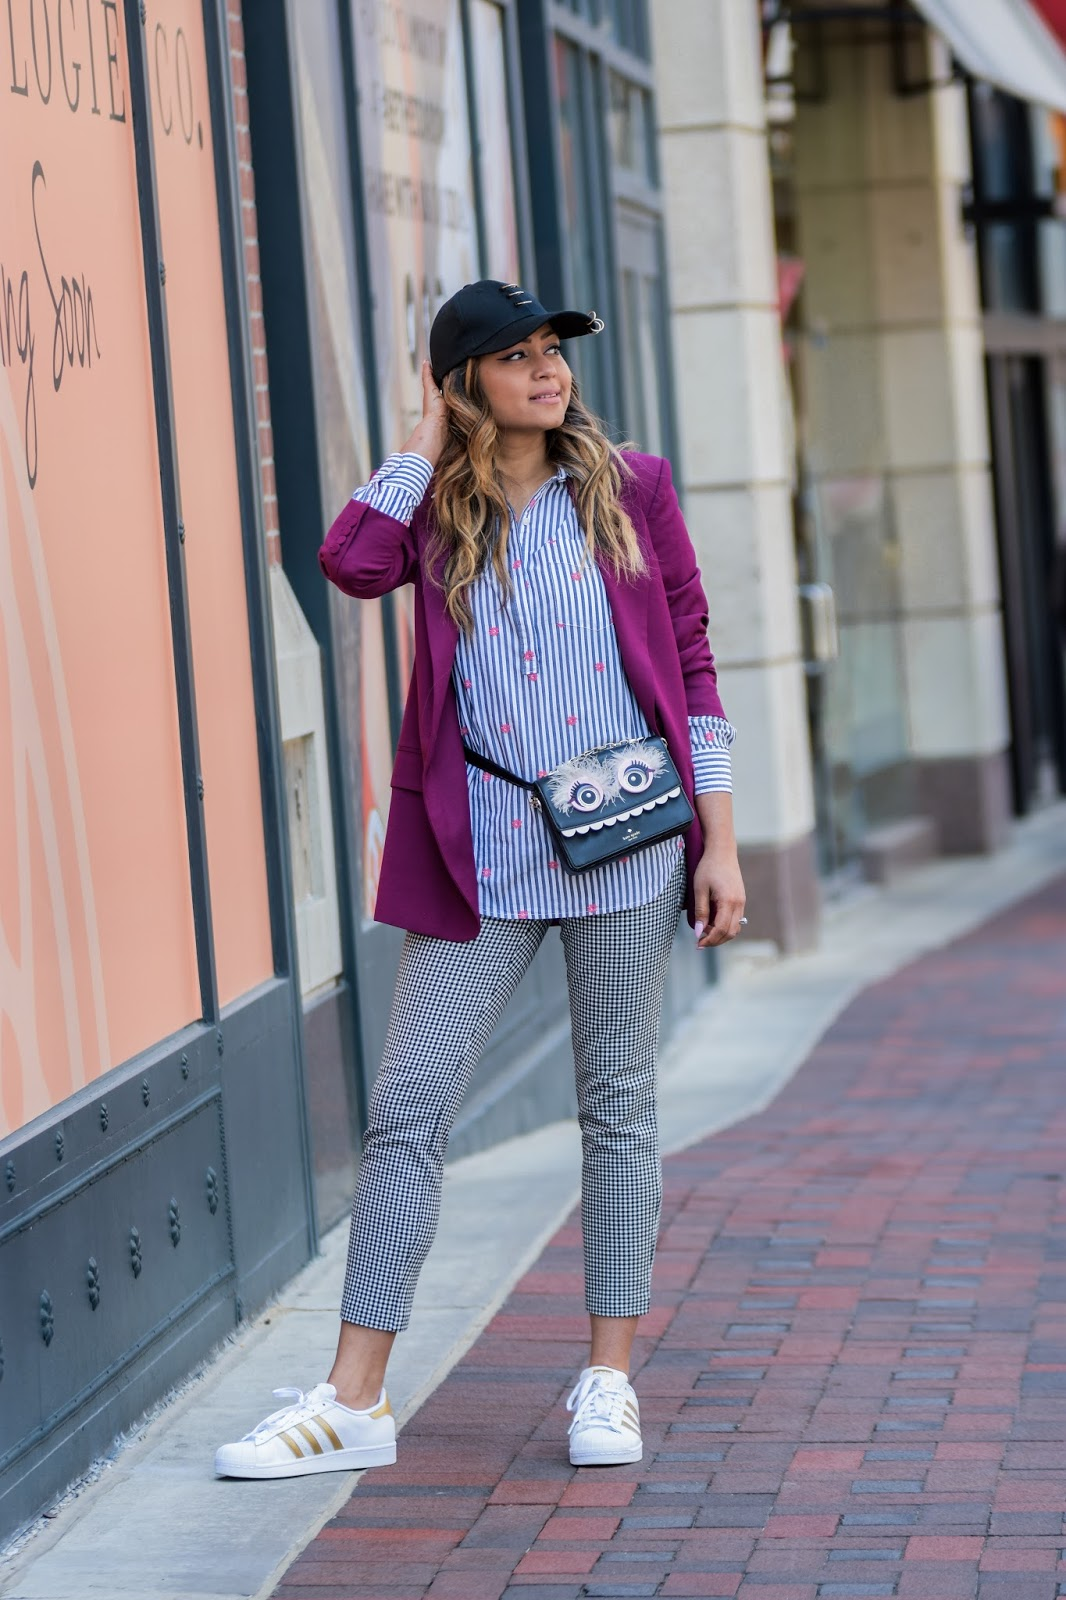 gingham pants, fanny pack outfit, waist bag outfit, adidas oiginals gold sneaker, gap gingham pants, street style, bethesda row, Dc blogger, print mixing, cap outfit, myriad musings